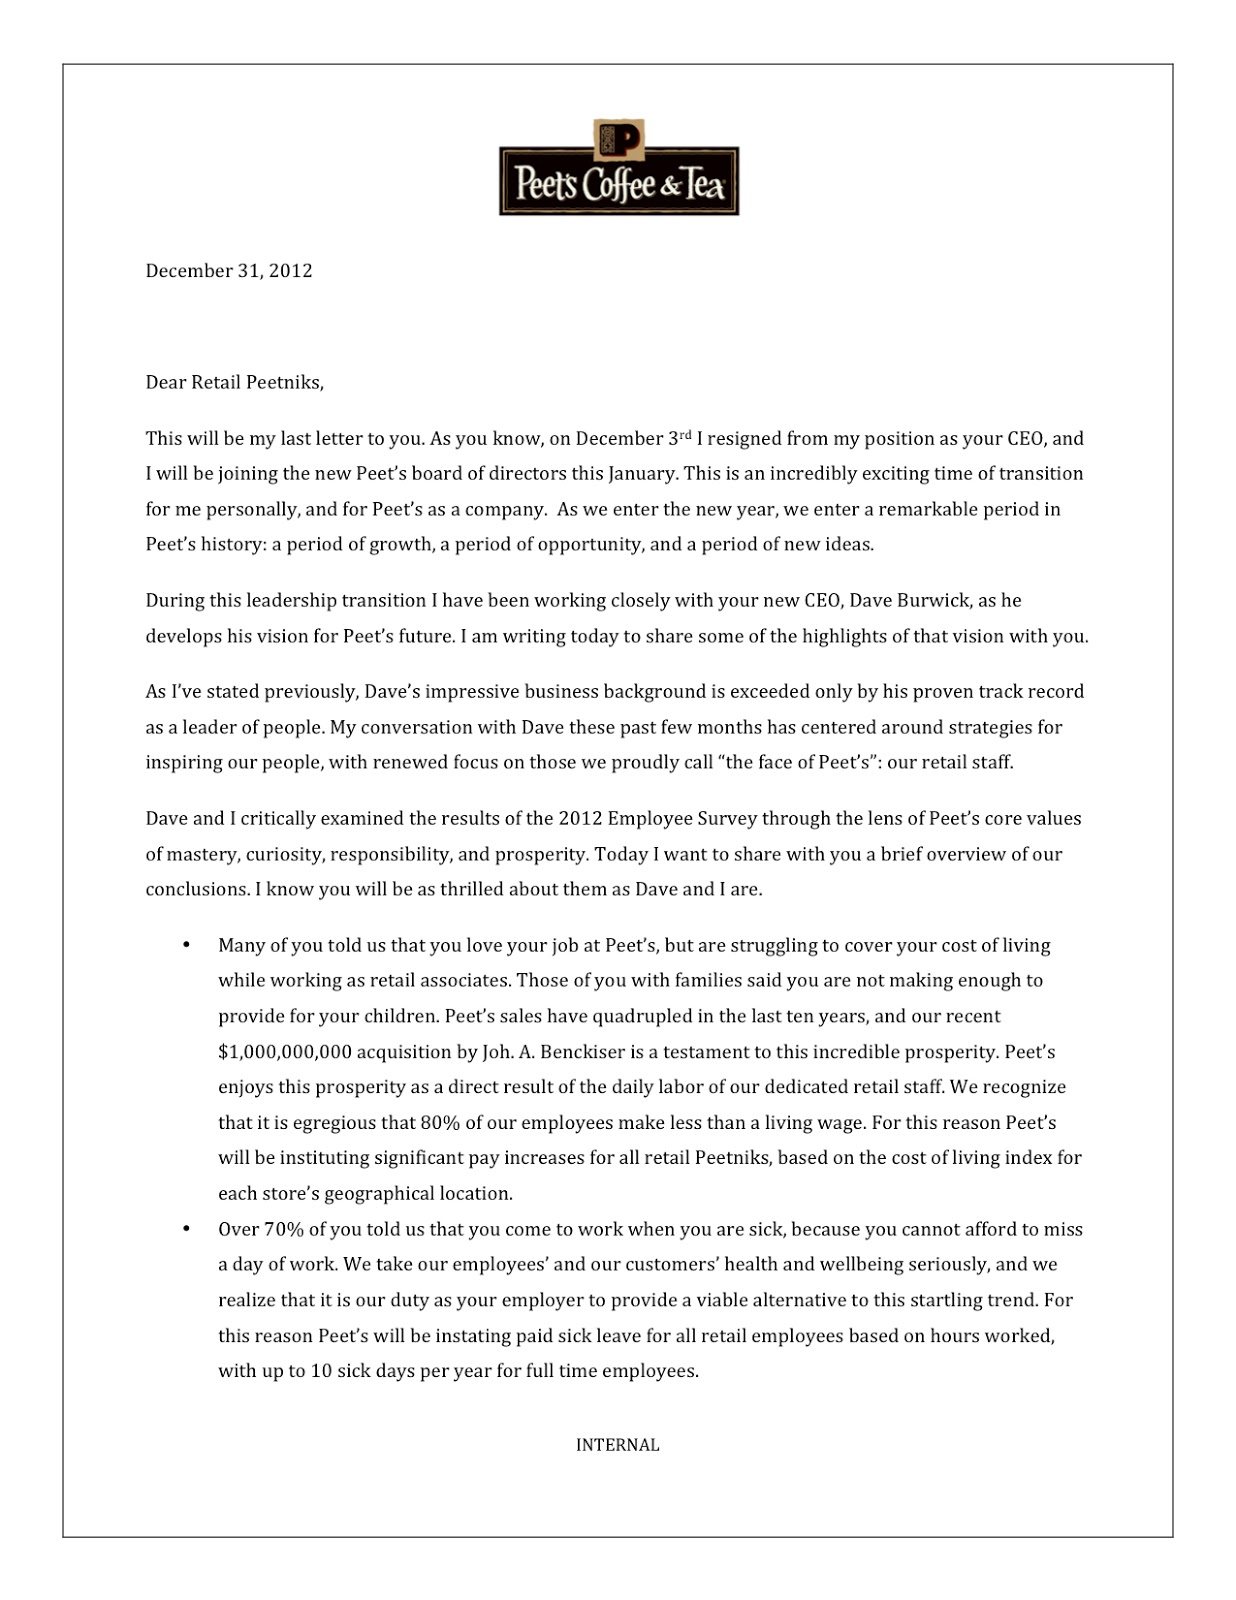 Ceo Letter To Employees Thank You Letter Ceo To Employees – Internal Memo Format Letter